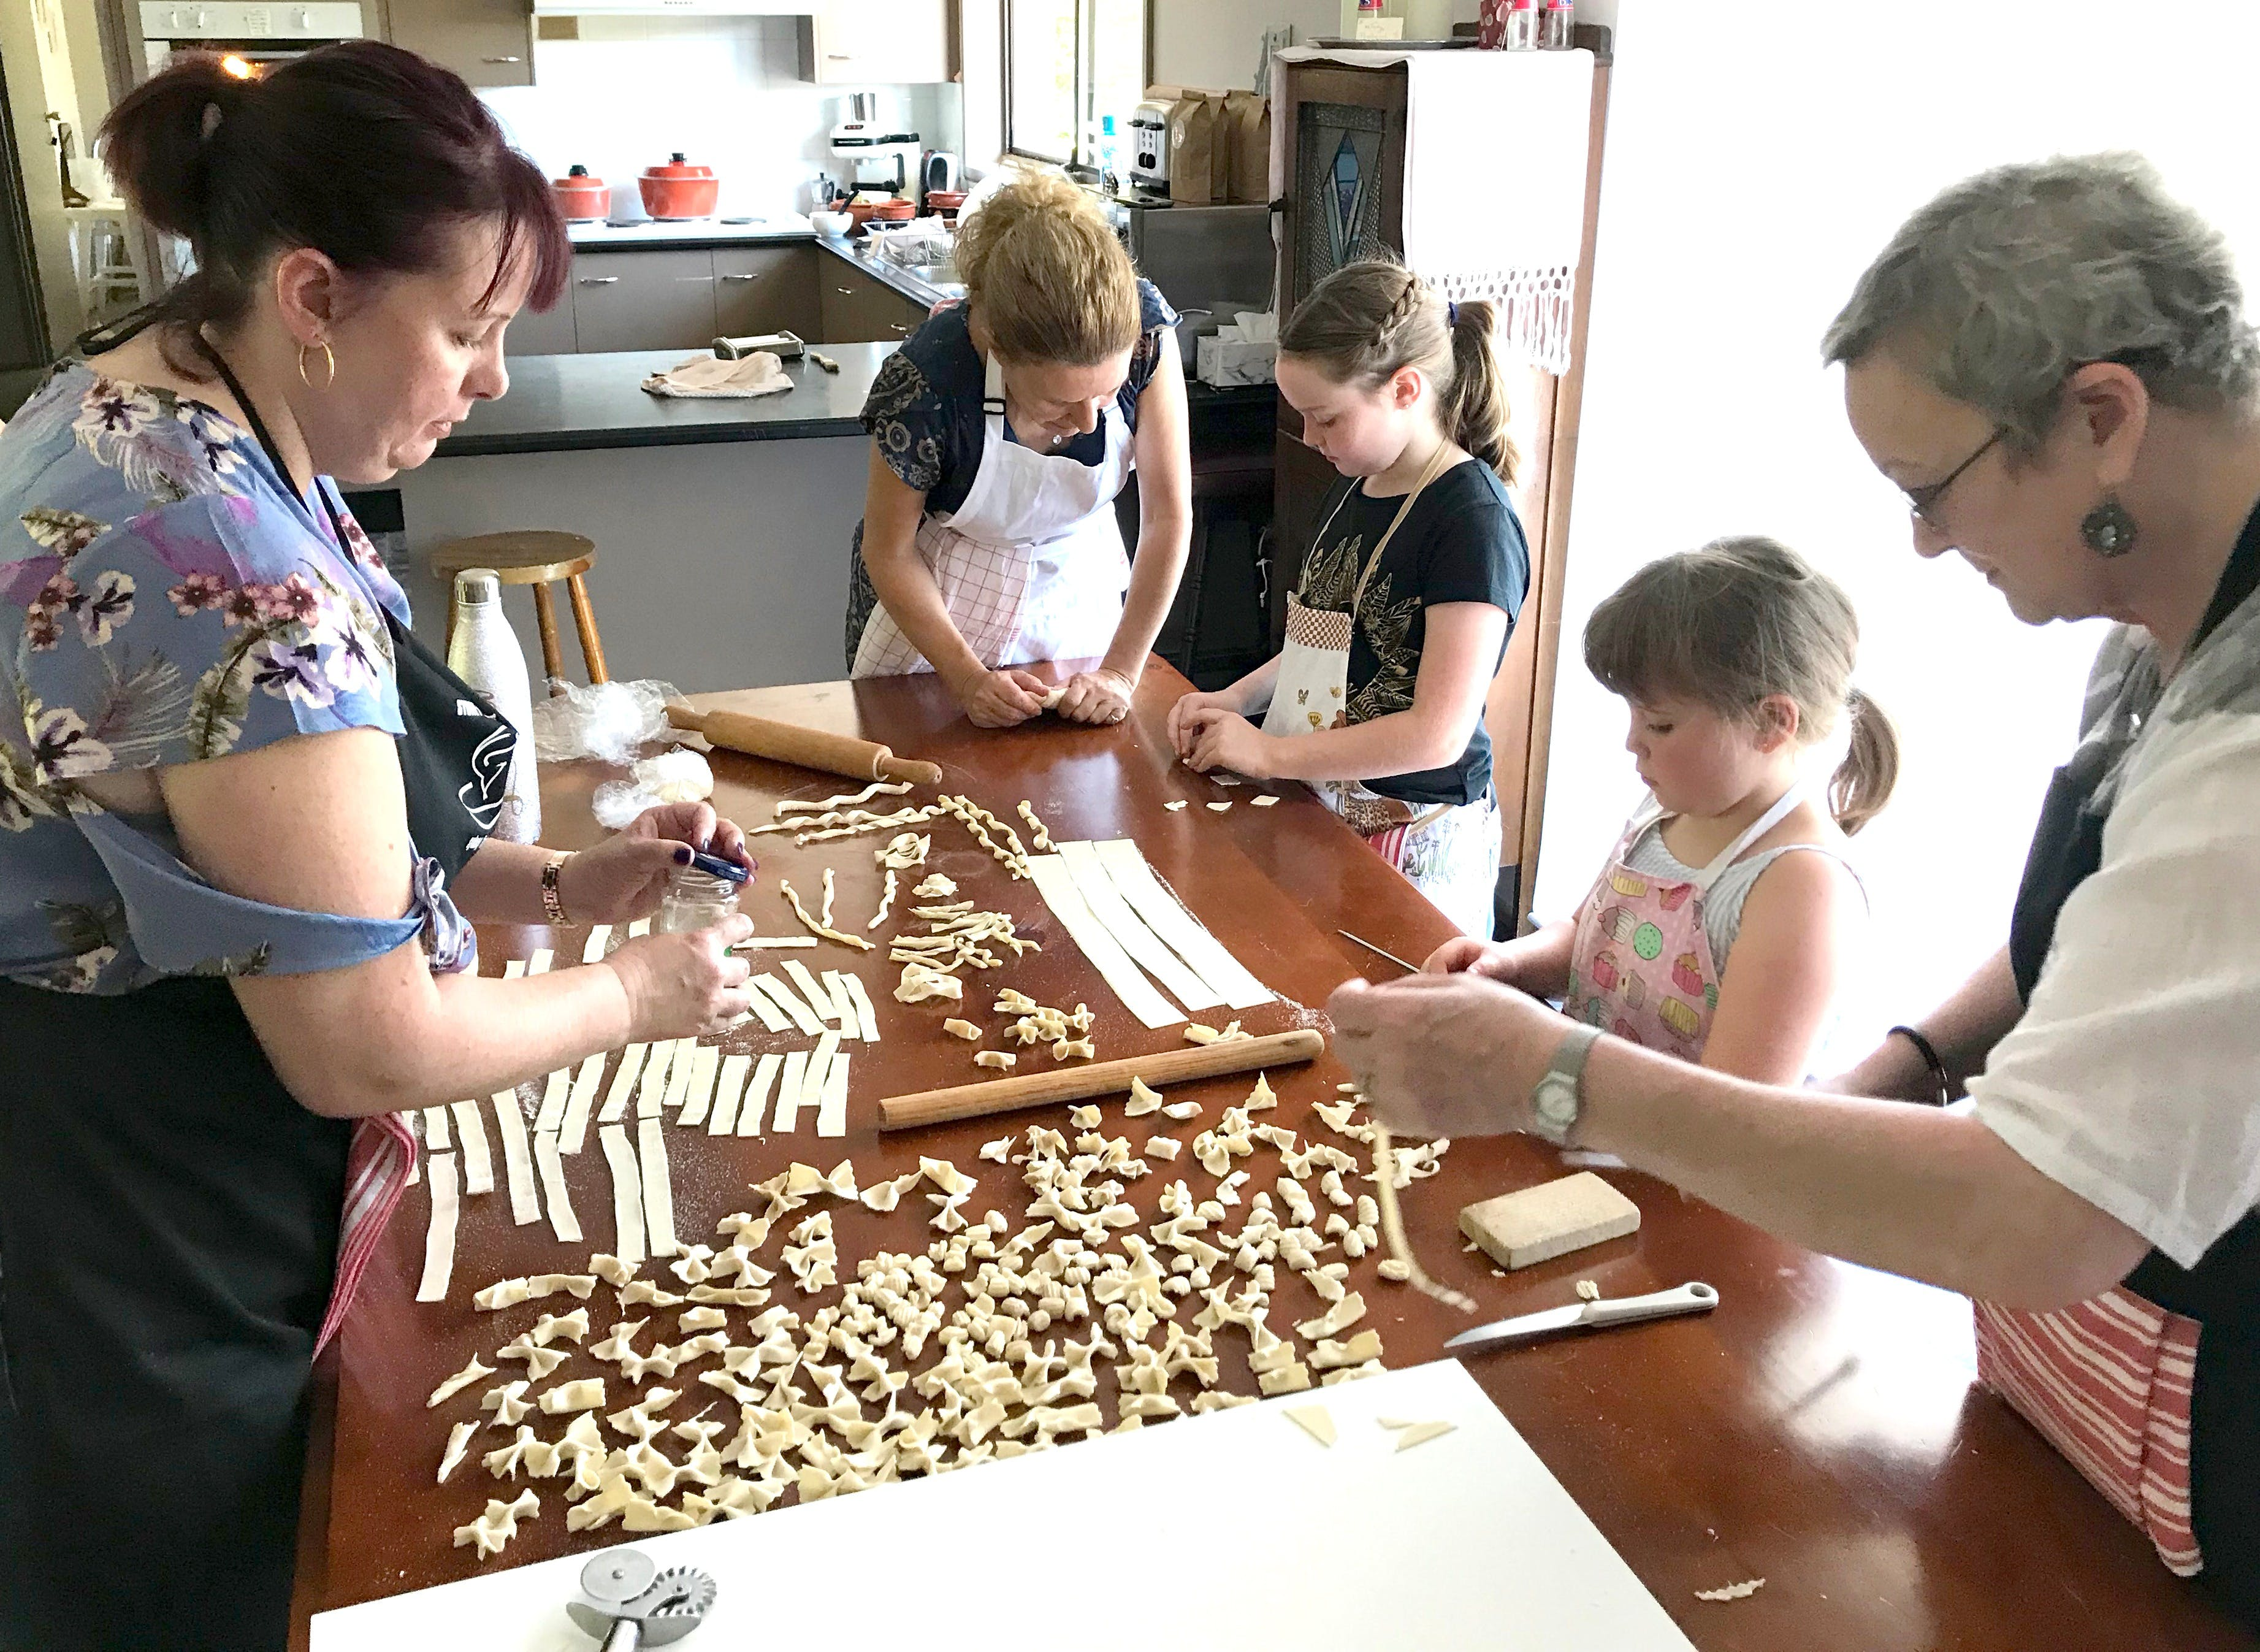 Kids Pasta Making Class - hands on fun at your house - Foster Accommodation